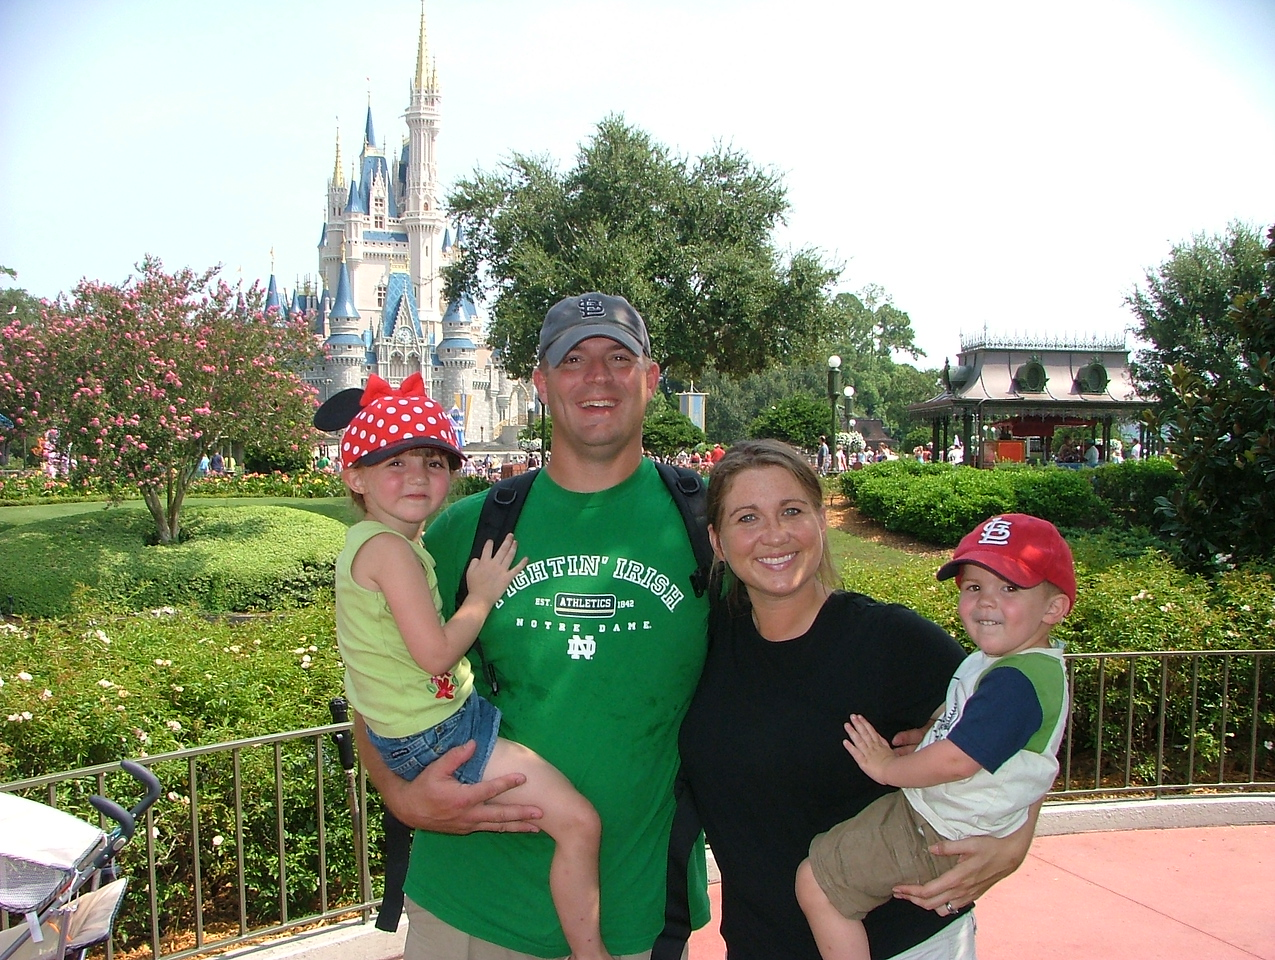 Bobby, me, and the kids at Disney World- AUG 2007